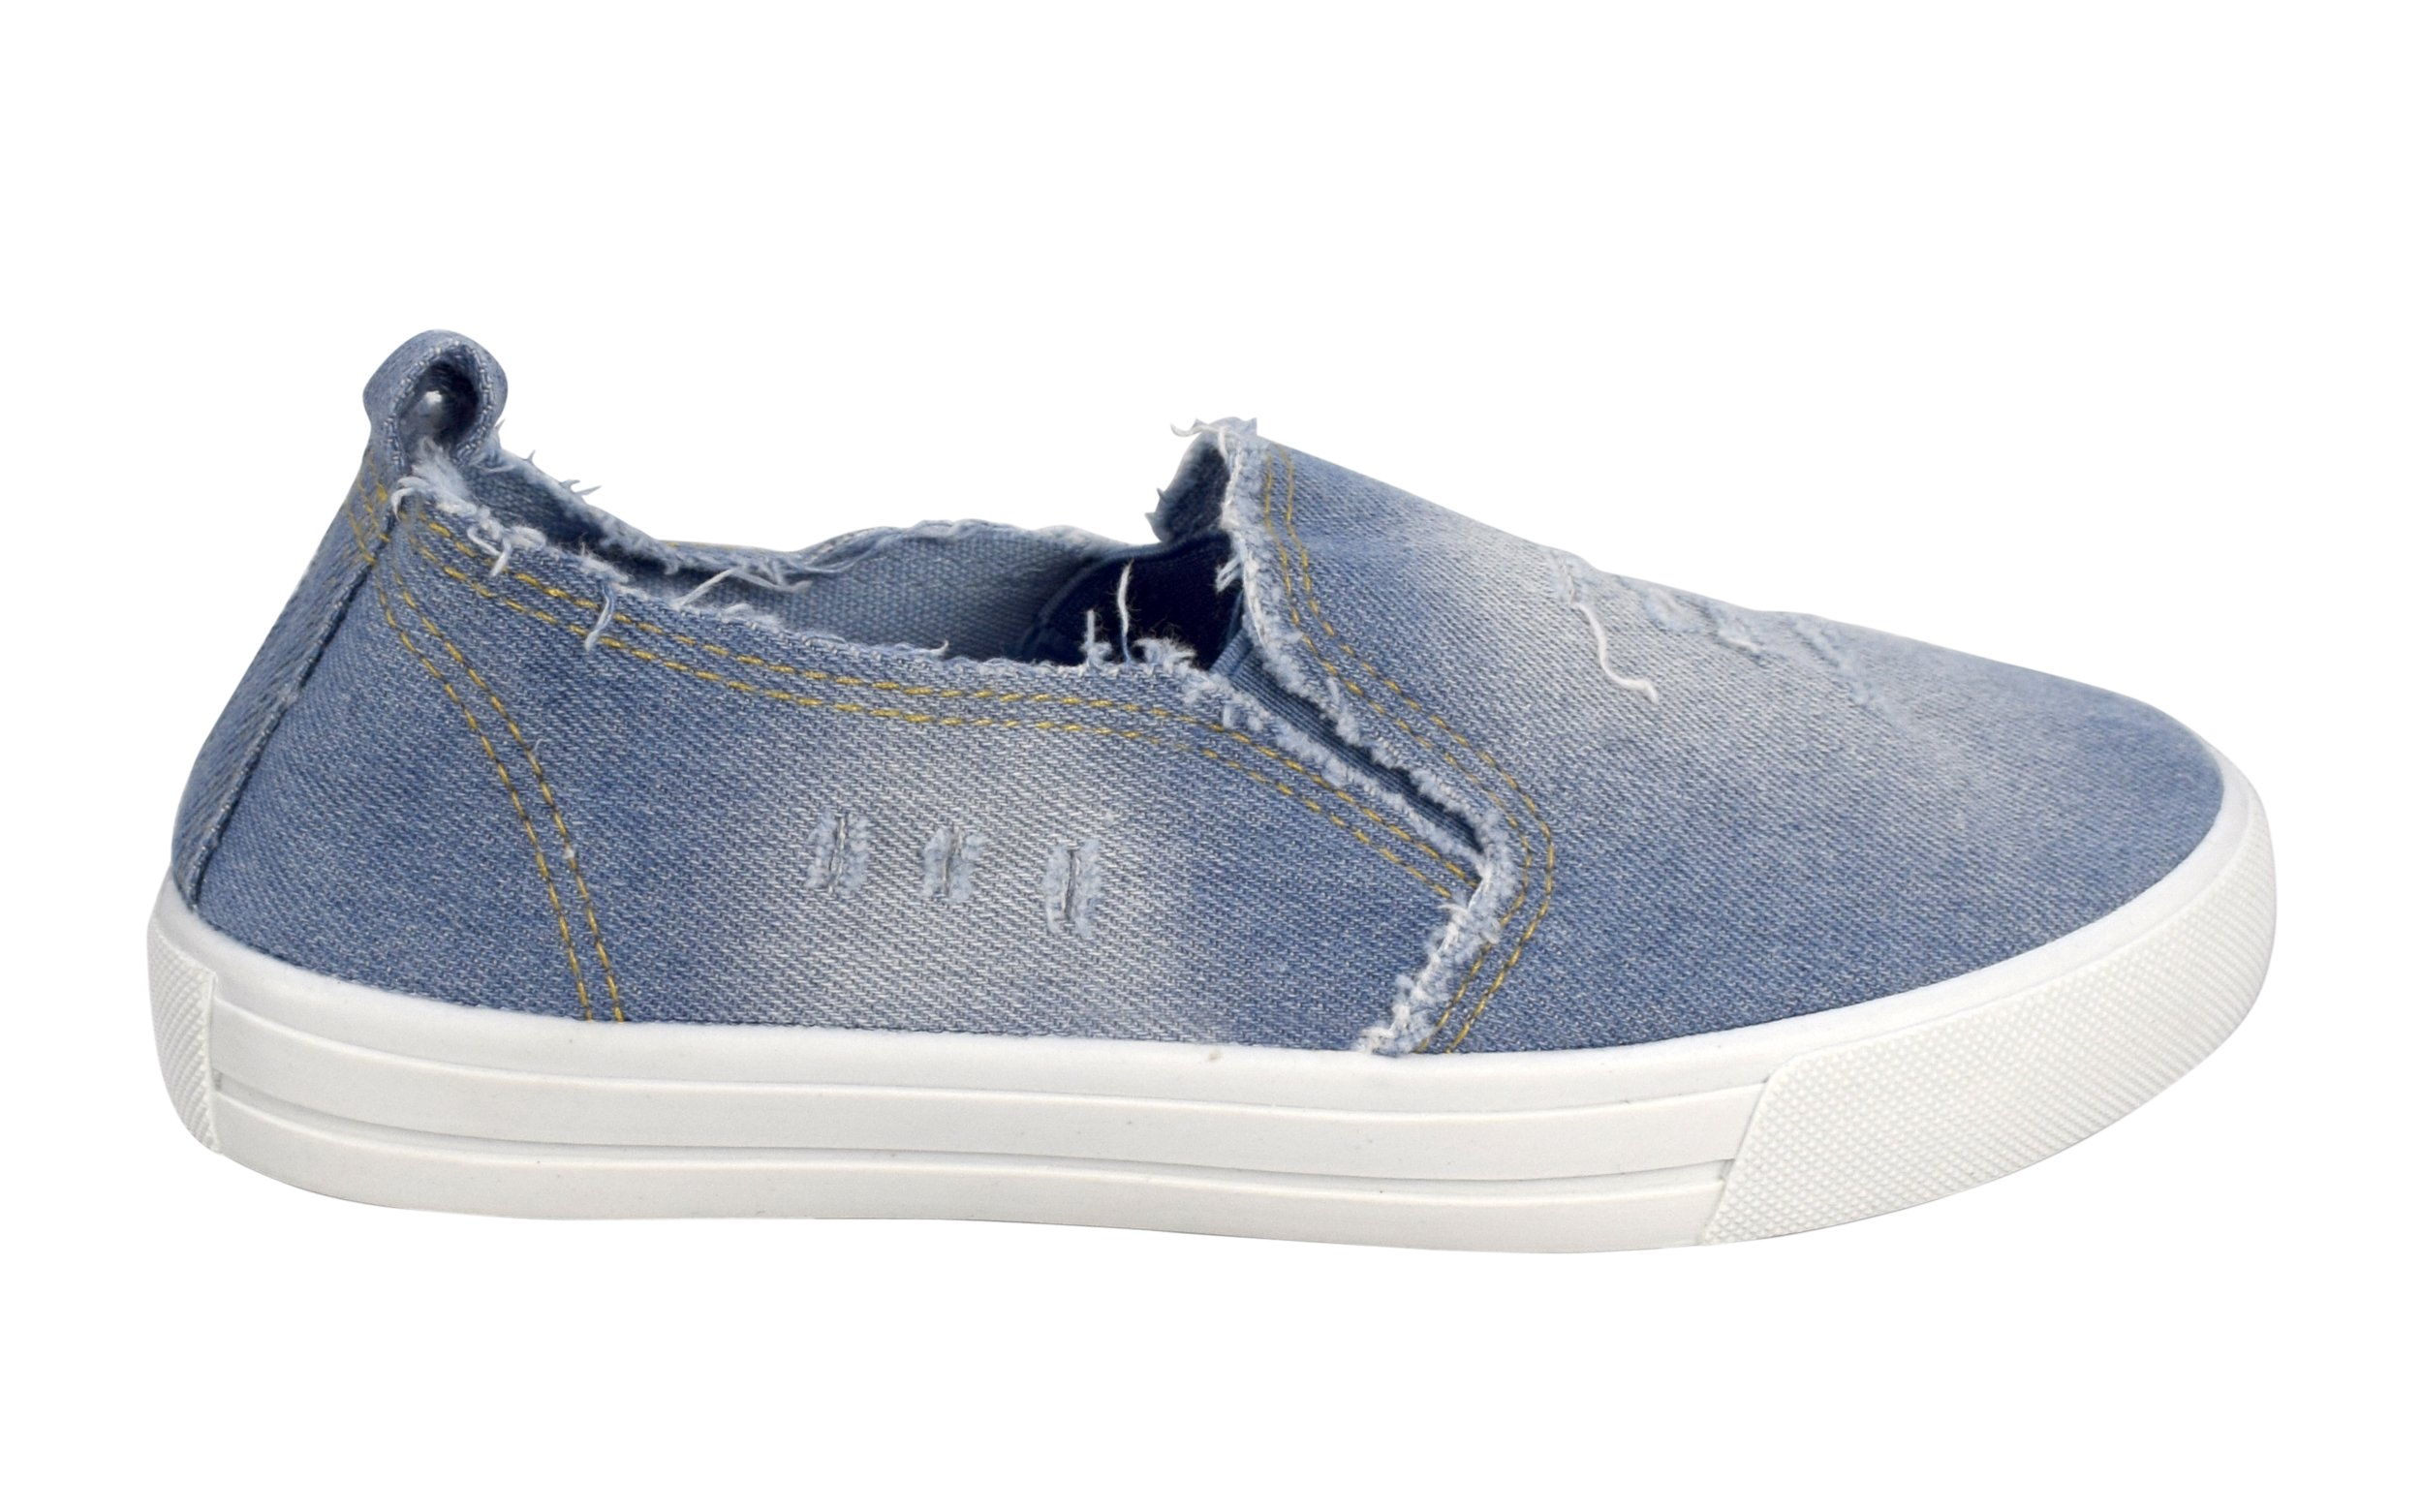 Peach Couture Womens Fashion Distressed Denim Casual Shoes Slip On Sneakers (L Blue 8) by Peach Couture (Image #4)